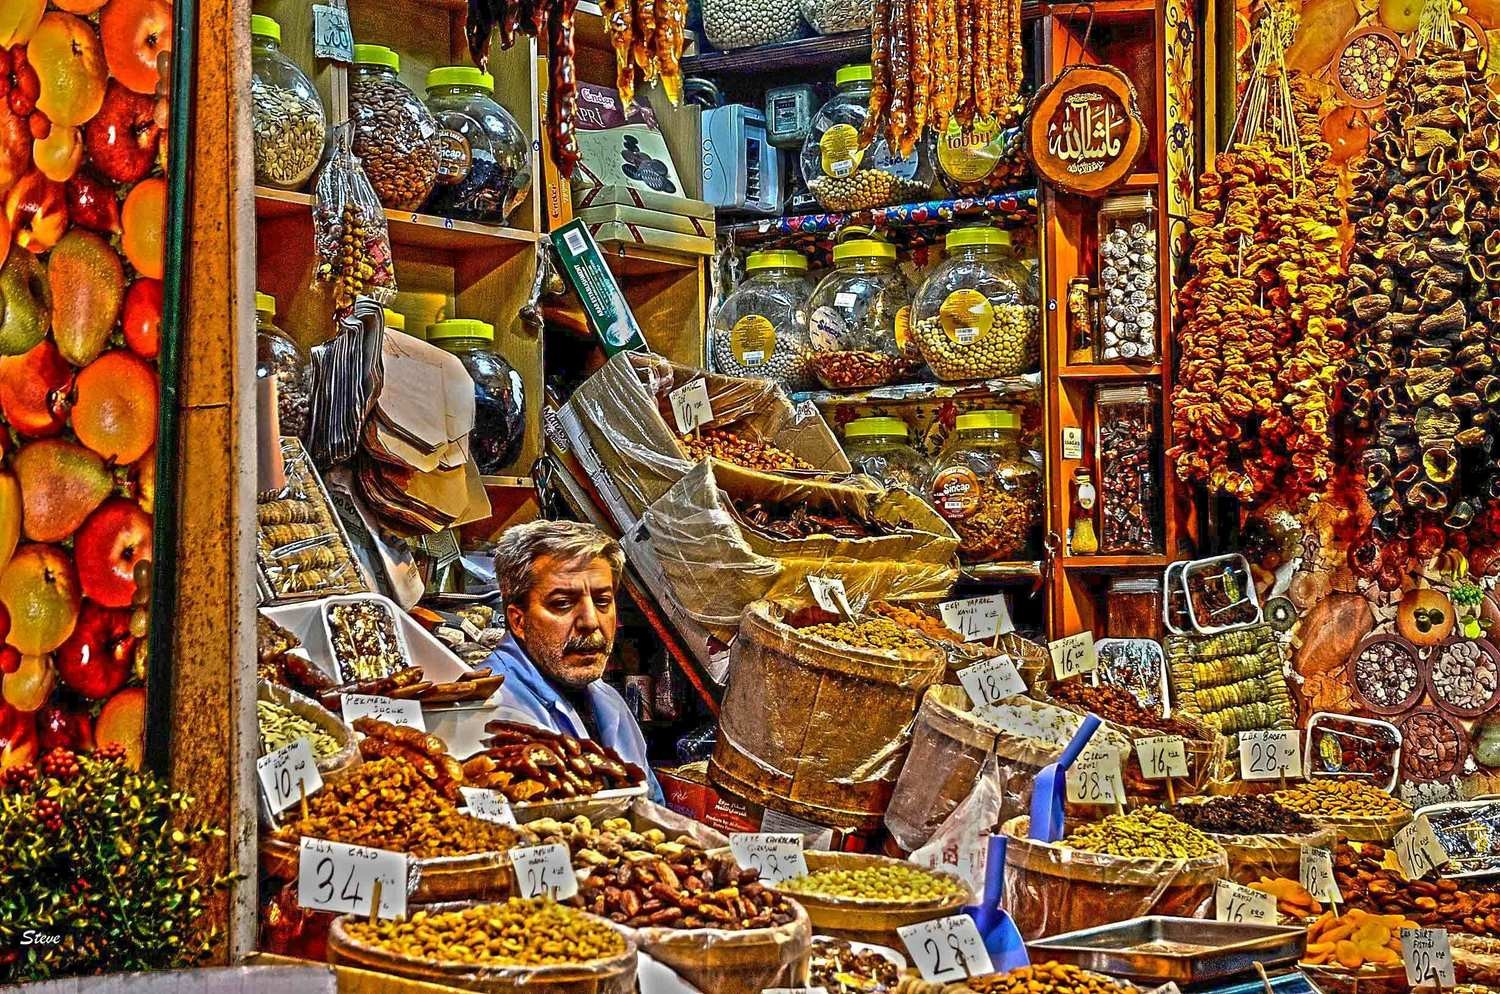 Grand Bazaar spices